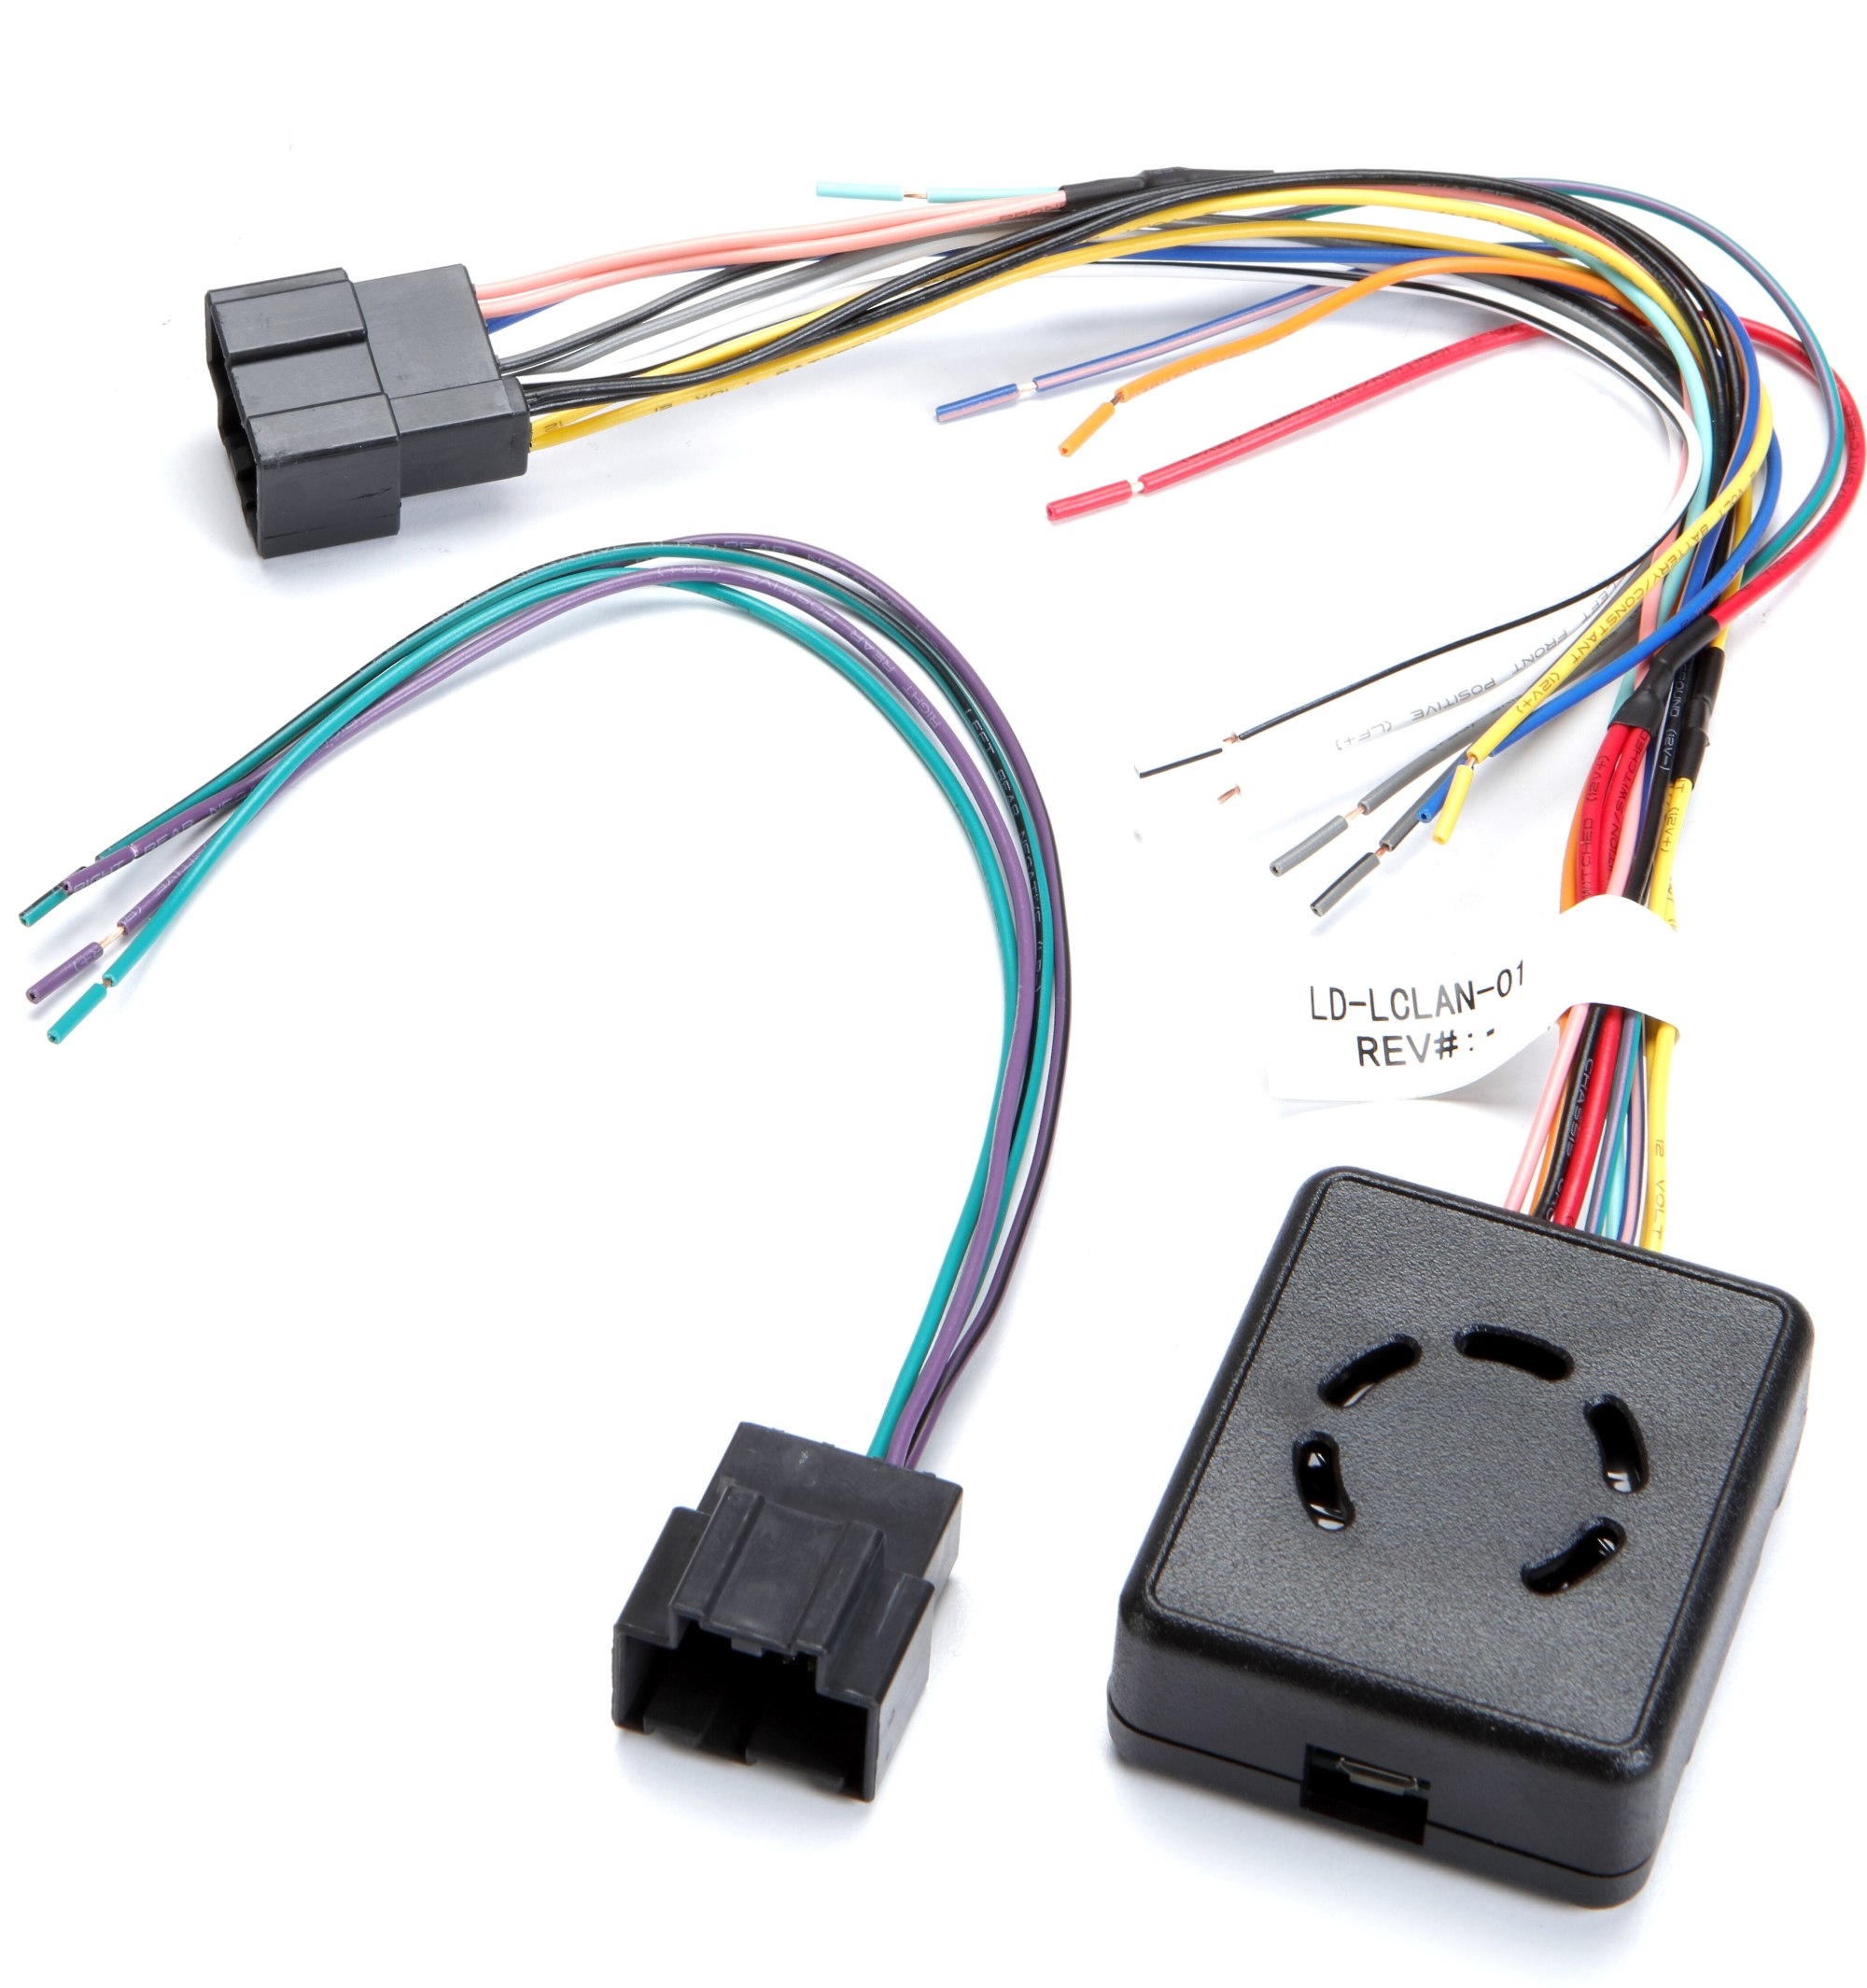 hight resolution of metra lc gmrc lan 01 wiring interface connect a new car stereo and retain factory door chimes and audible safety warnings in select 2006 12 gm vehicles at